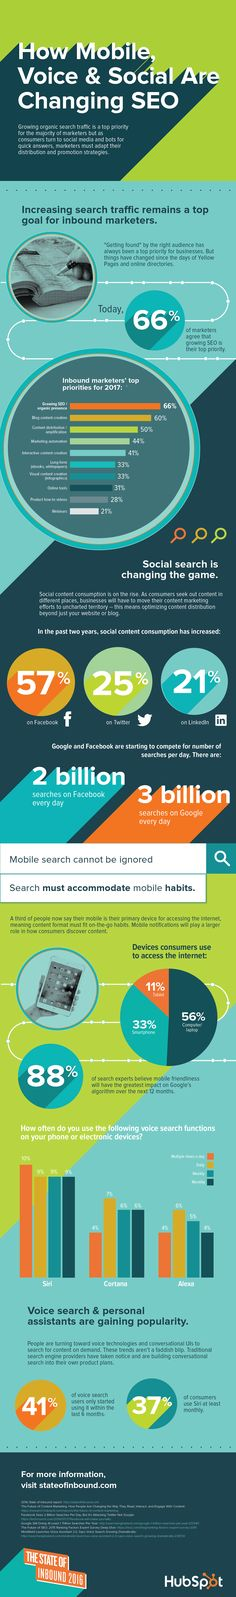 How Mobile, Voice and Social are Changing SEO [Infographic] | Social Media Today